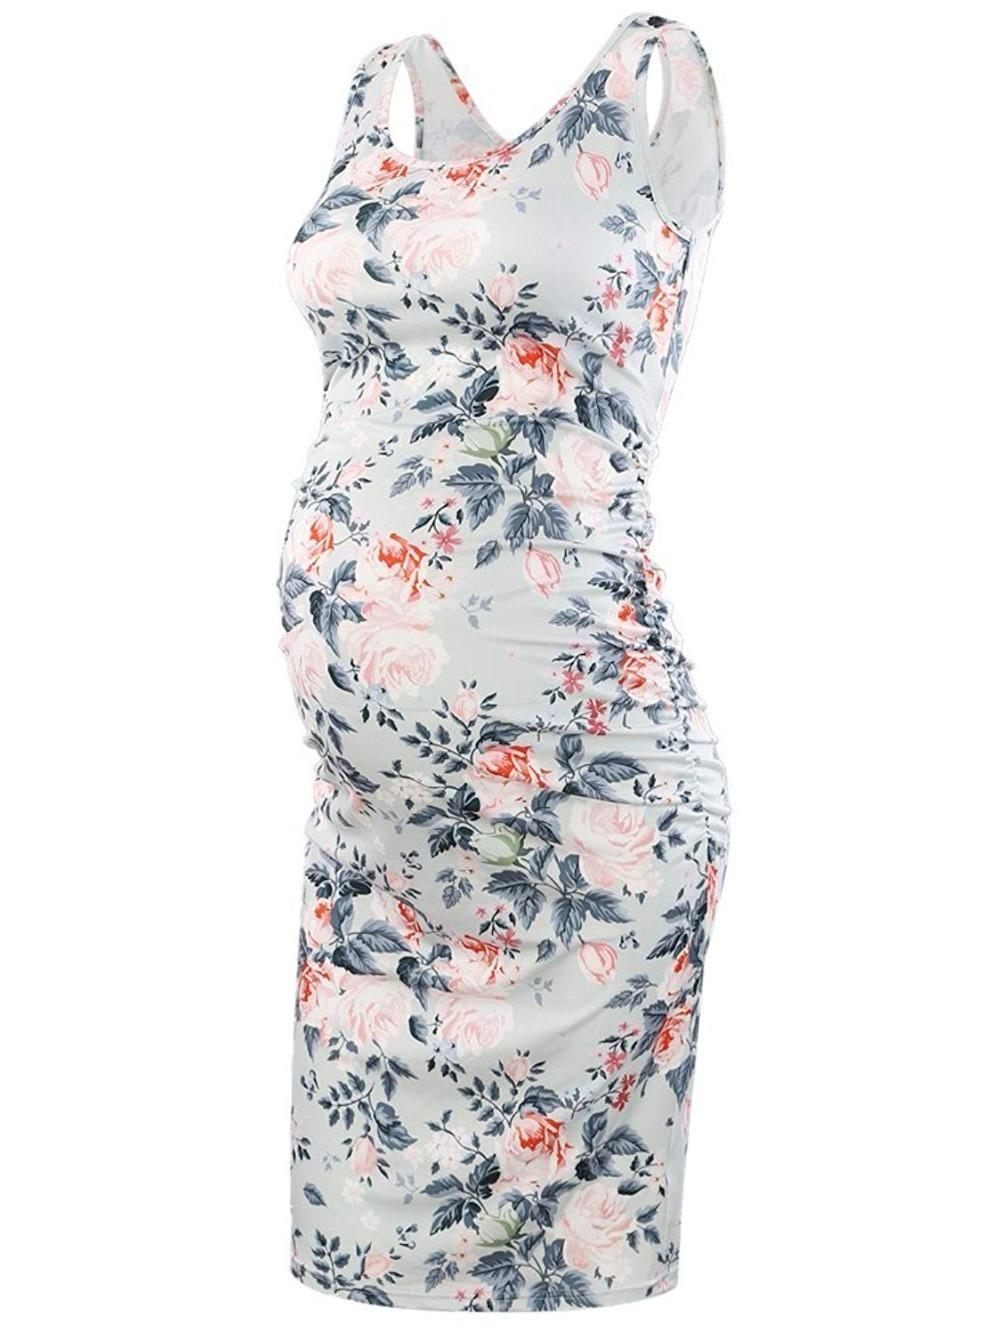 820c70215bd60 2019 Maternity Sleeveless Dresses Maternity Clothes Bodycon Floral ...